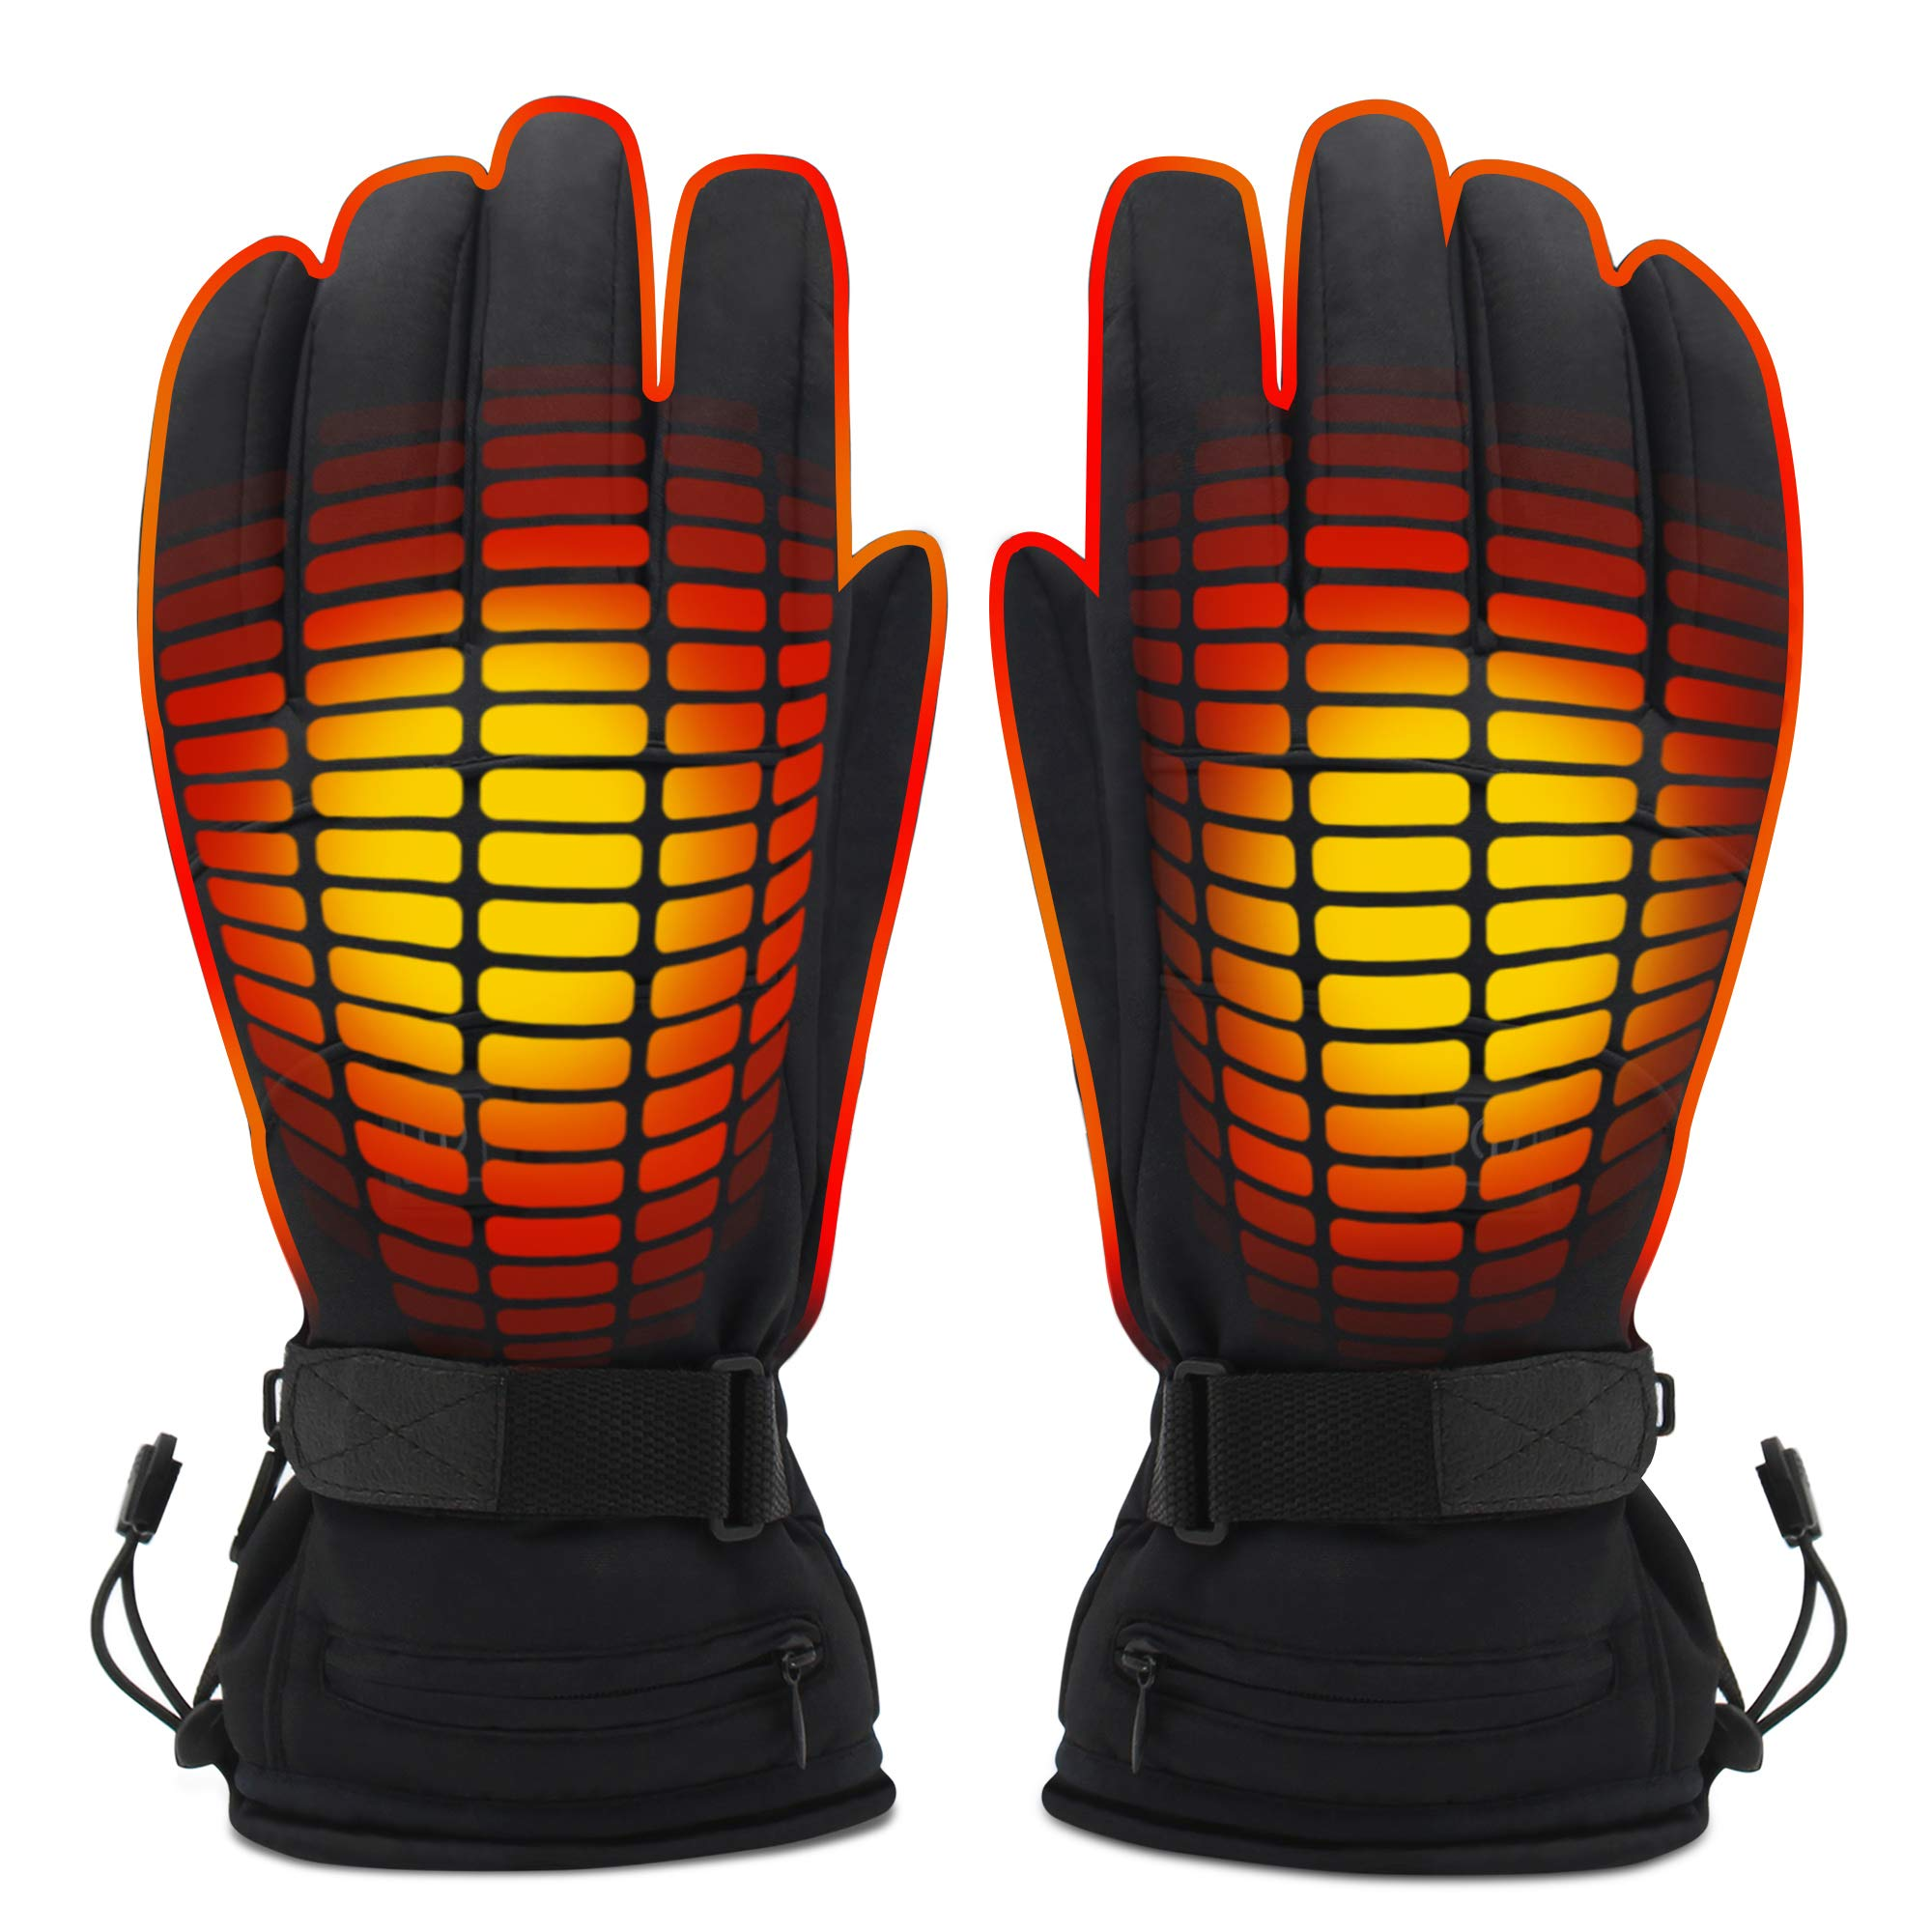 GLOBAL VASION Electric Heated Gloves 3 Level Heating Adjustable Cold Whether Gloves with Rechargeable Battery 3.7V Waterproof Touchscreen Lightweight Skiing Gloves for Men Women by GLOBAL VASION